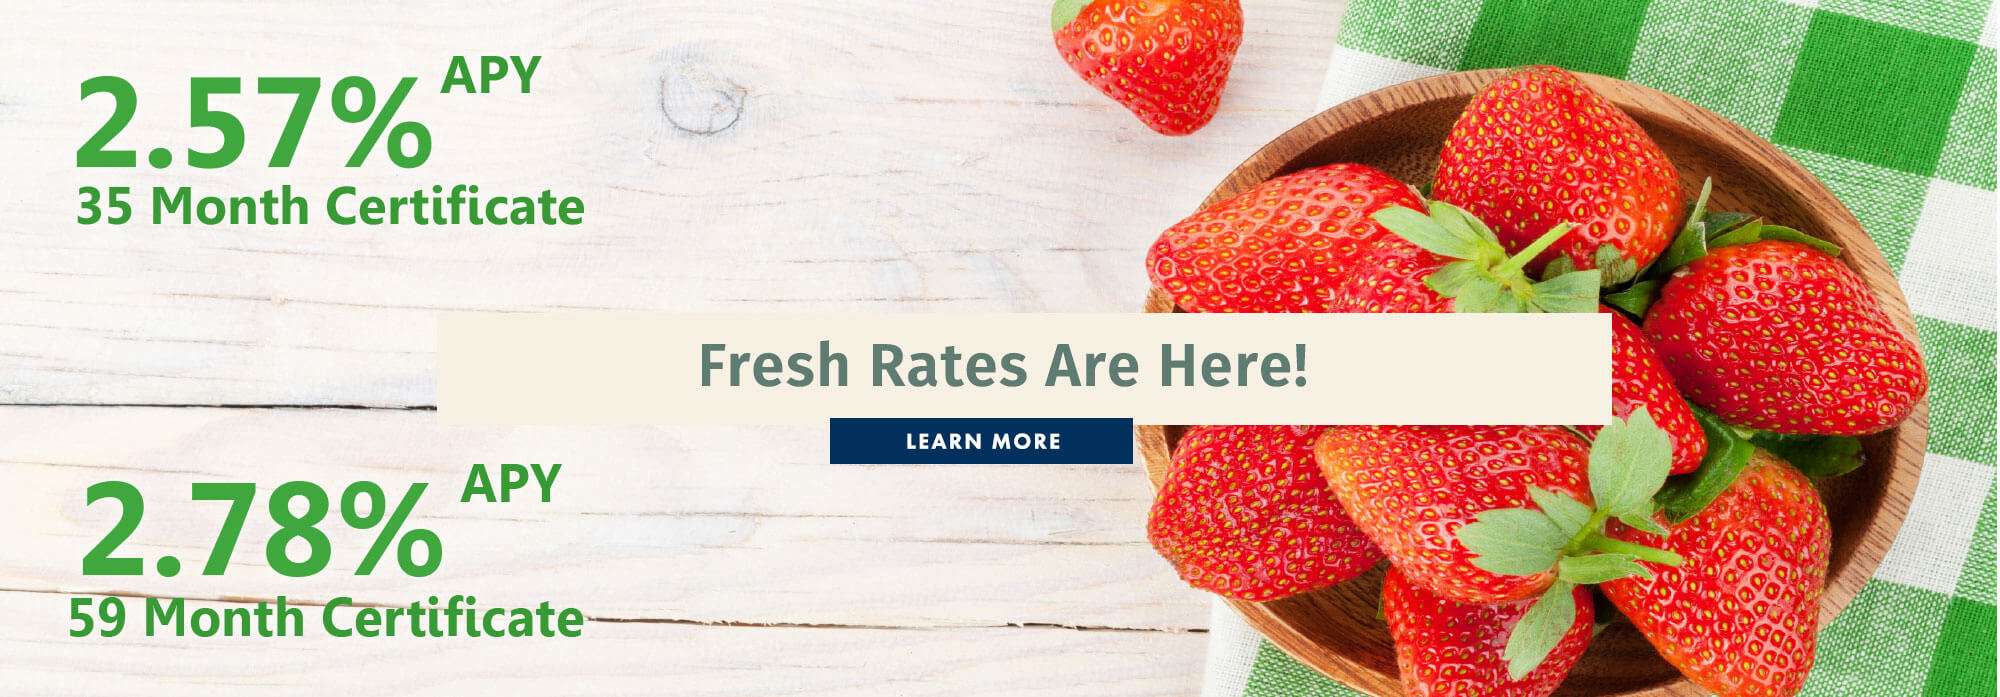 Fresh Rates Are Here!